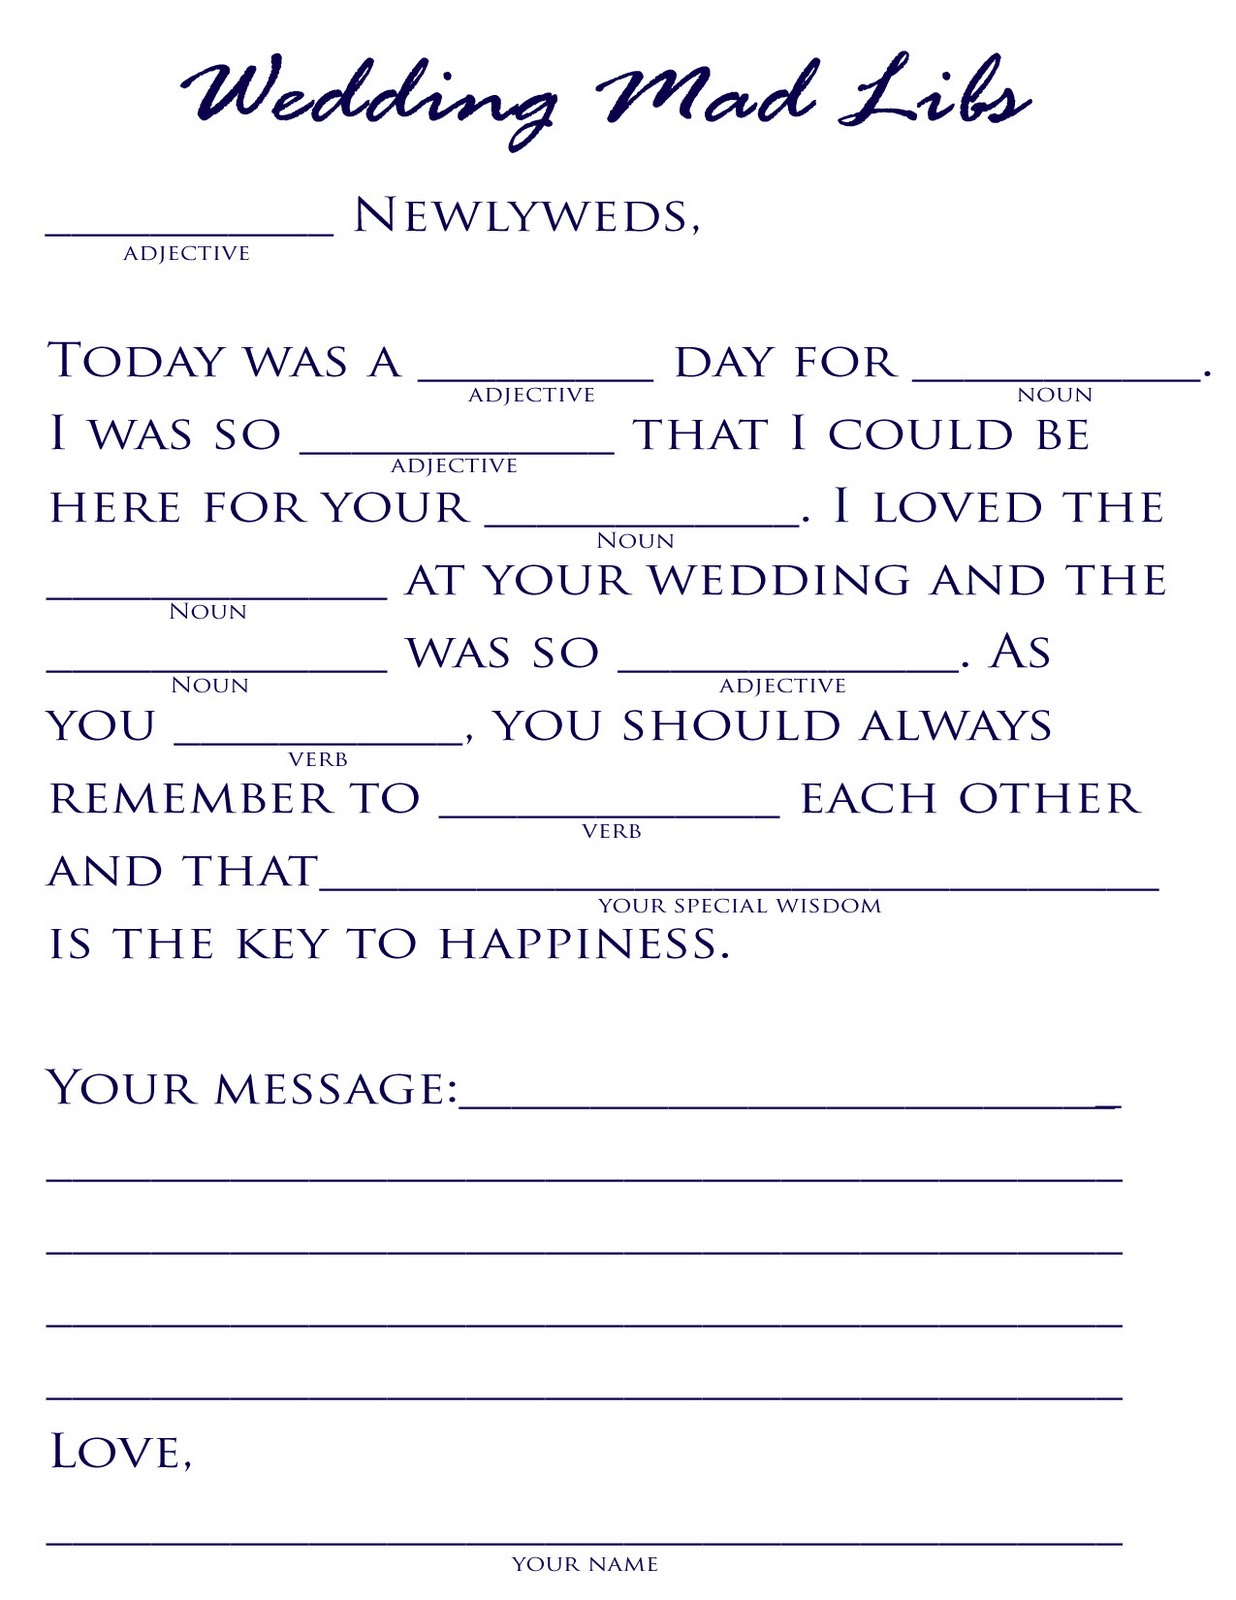 Trust image inside printable wedding mad libs